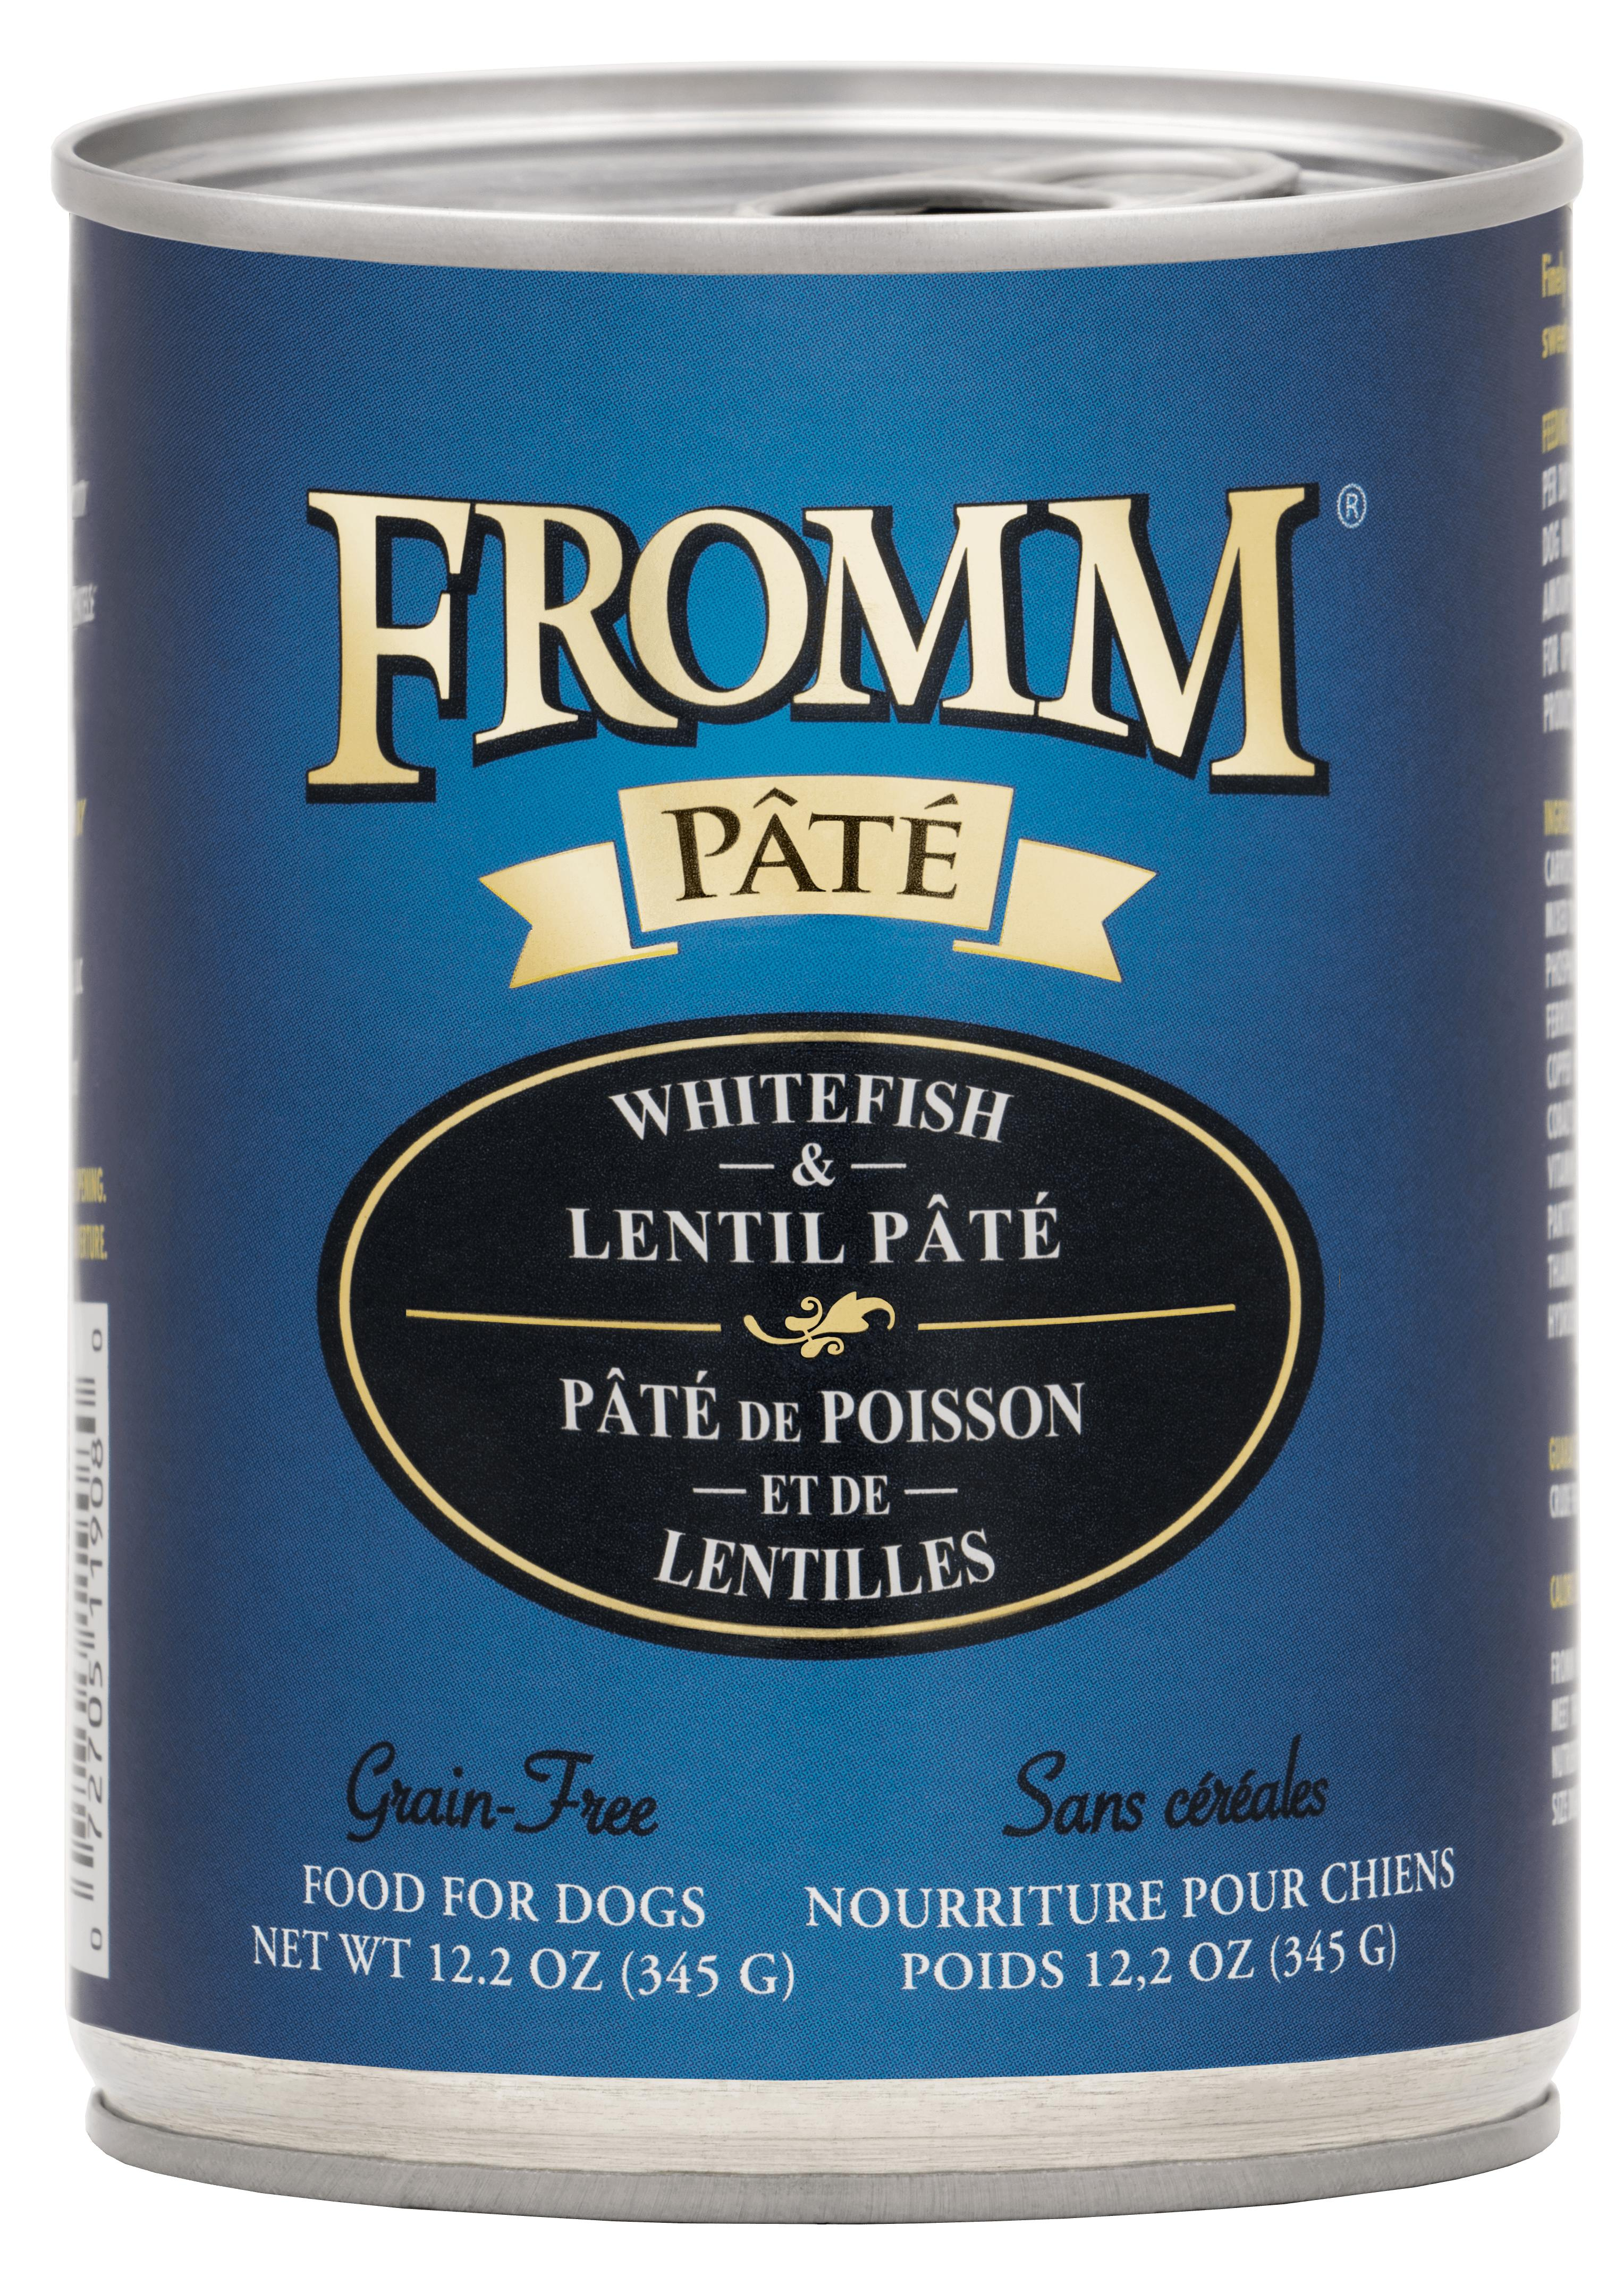 Fromm Whitefish & Lentil Pate Canned Dog Food, 12.2-oz